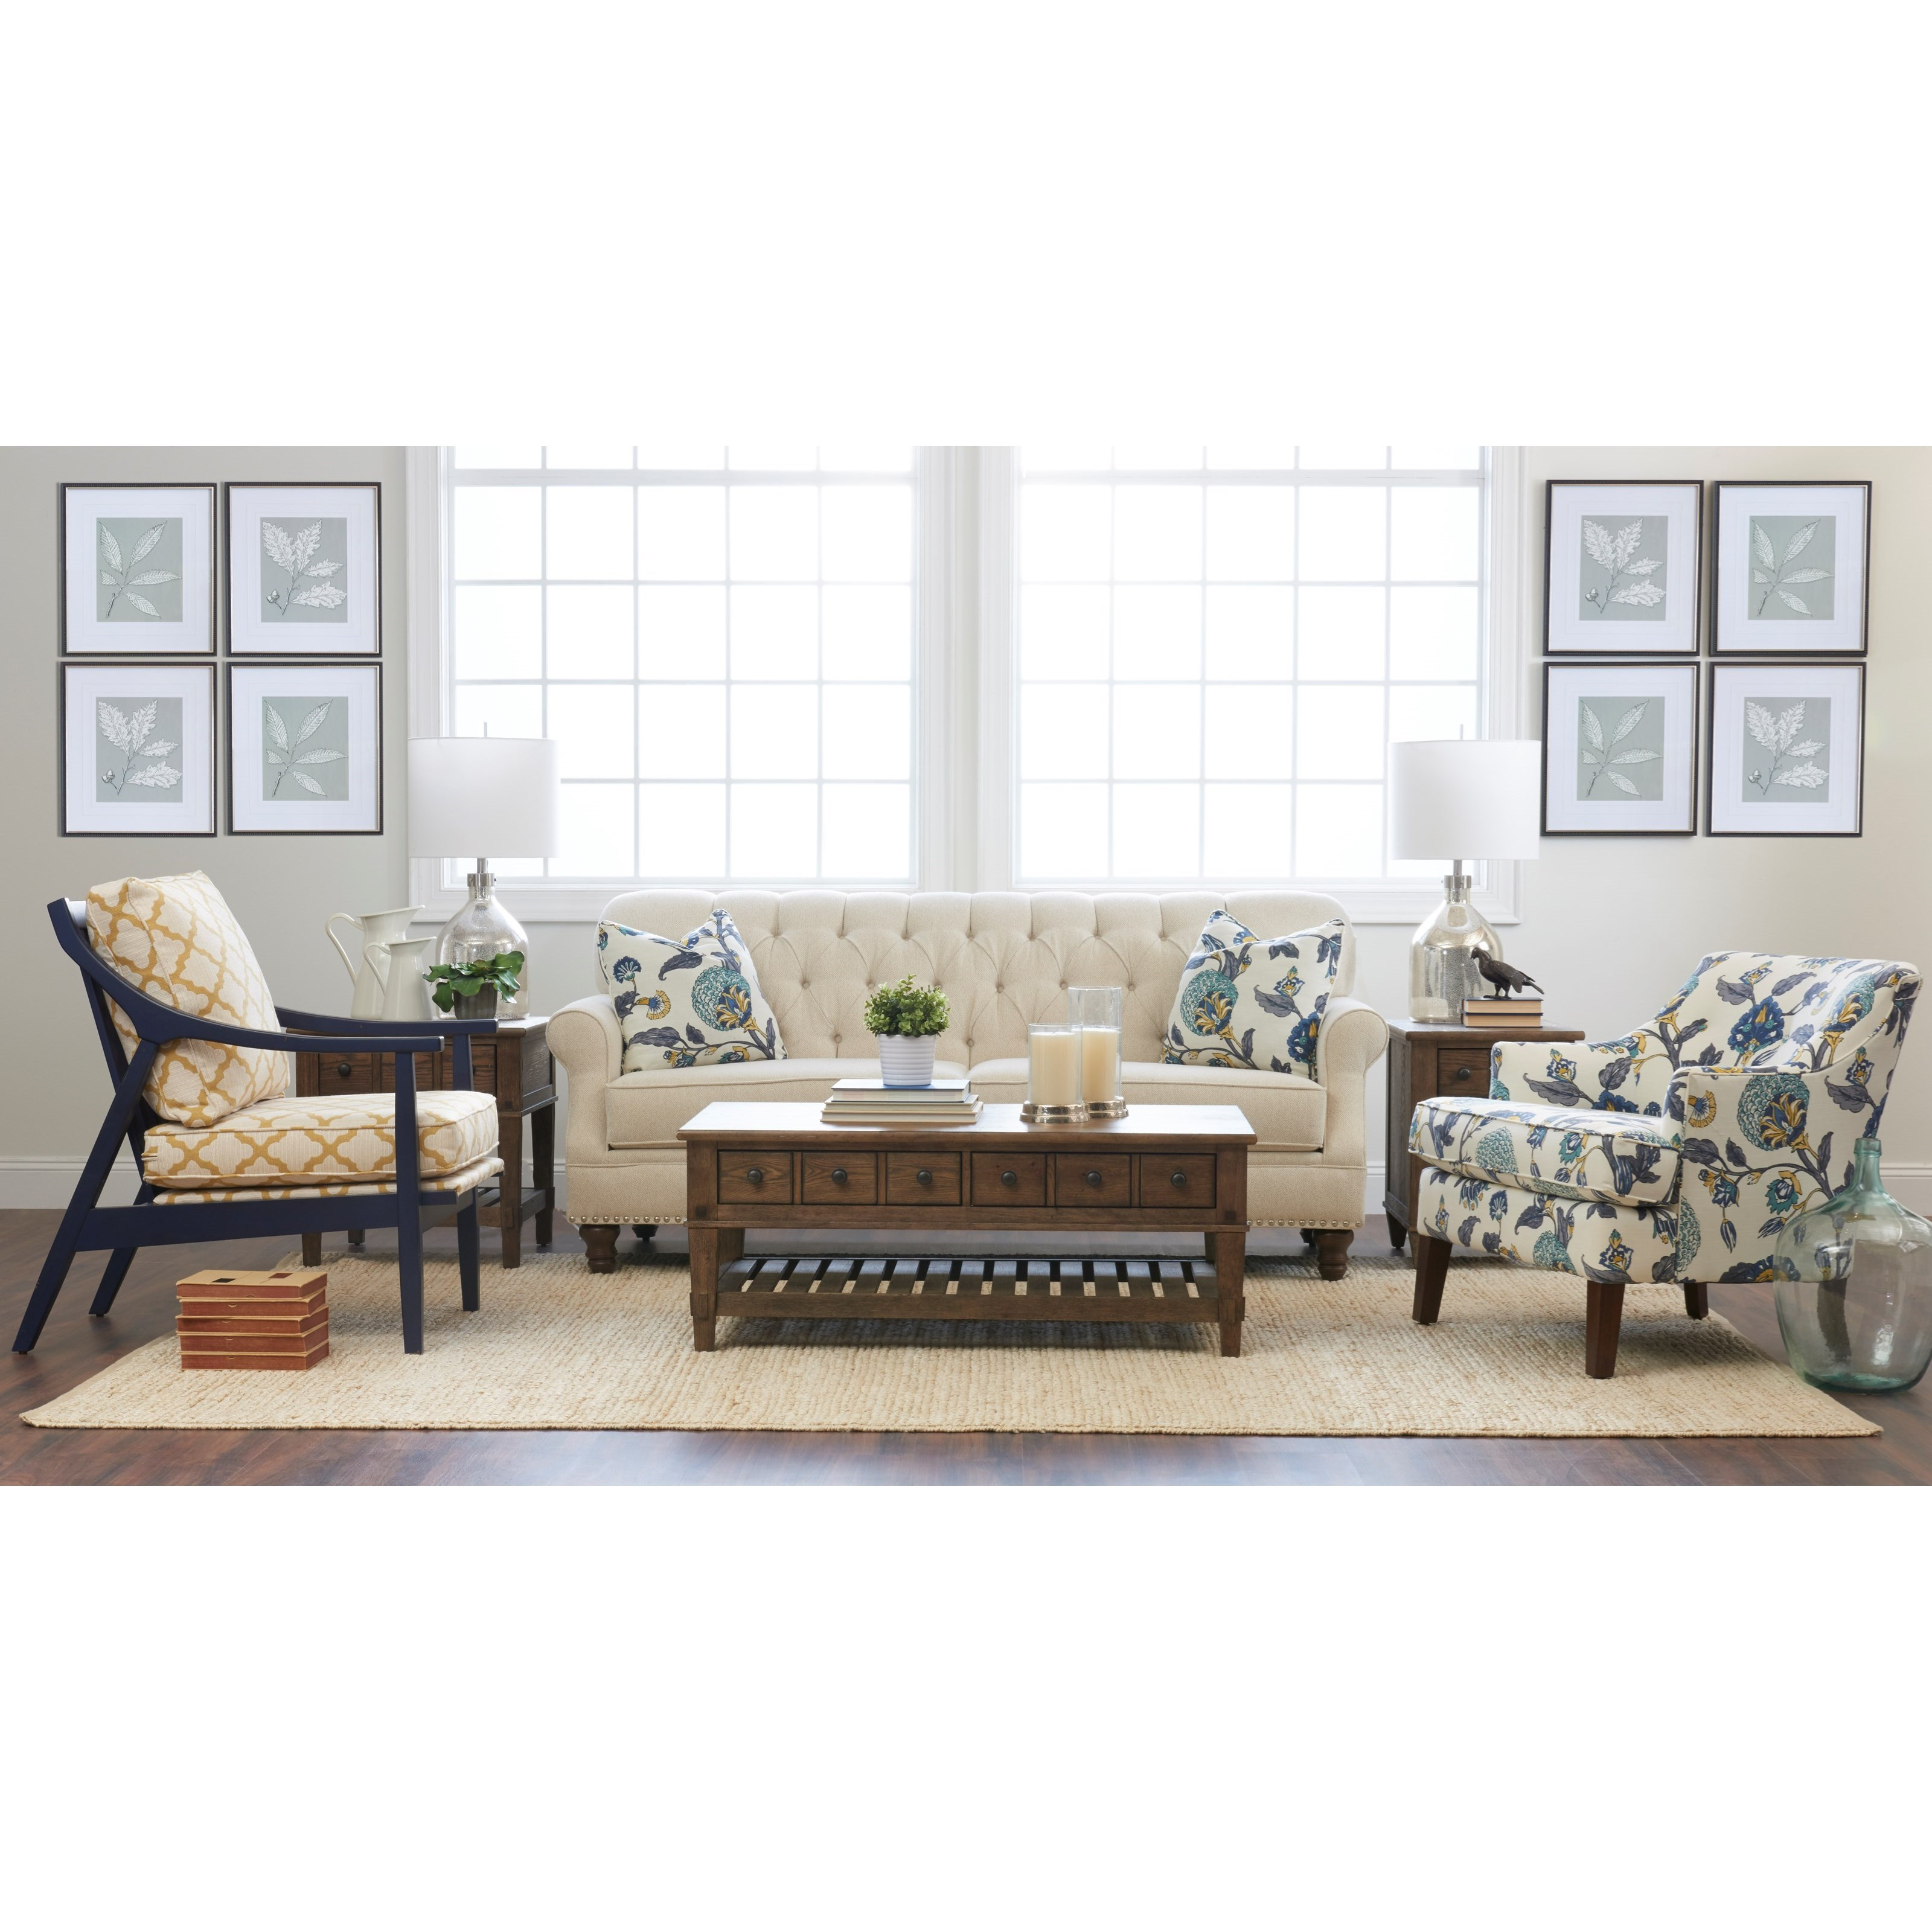 klaussner burbank traditional tufted apartment size sofa with nailheads value city furniture. Black Bedroom Furniture Sets. Home Design Ideas